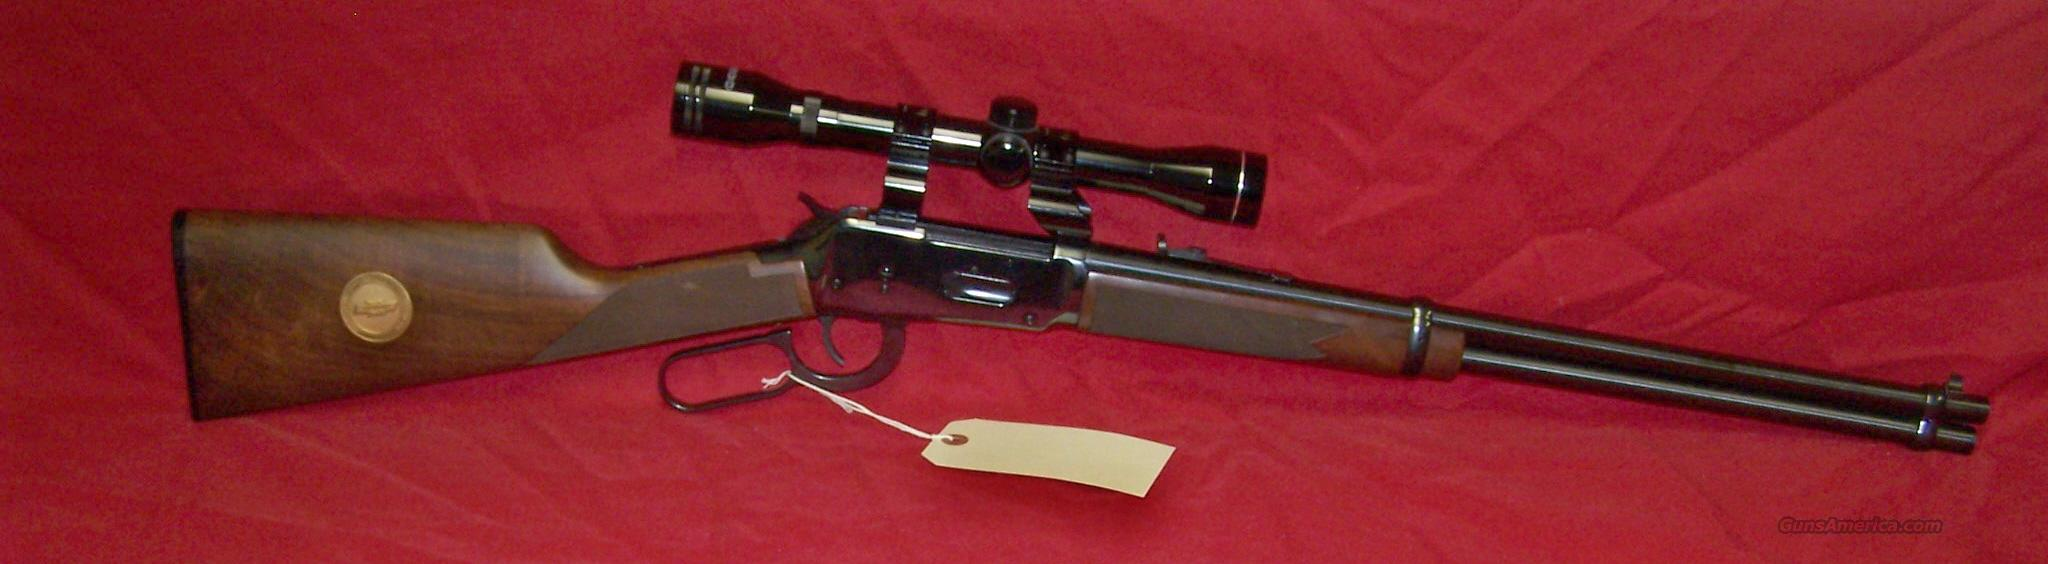 WINCHESTER 1894 CHEVY COMMEMMORATIVE  Guns > Rifles > Winchester Rifle Commemoratives